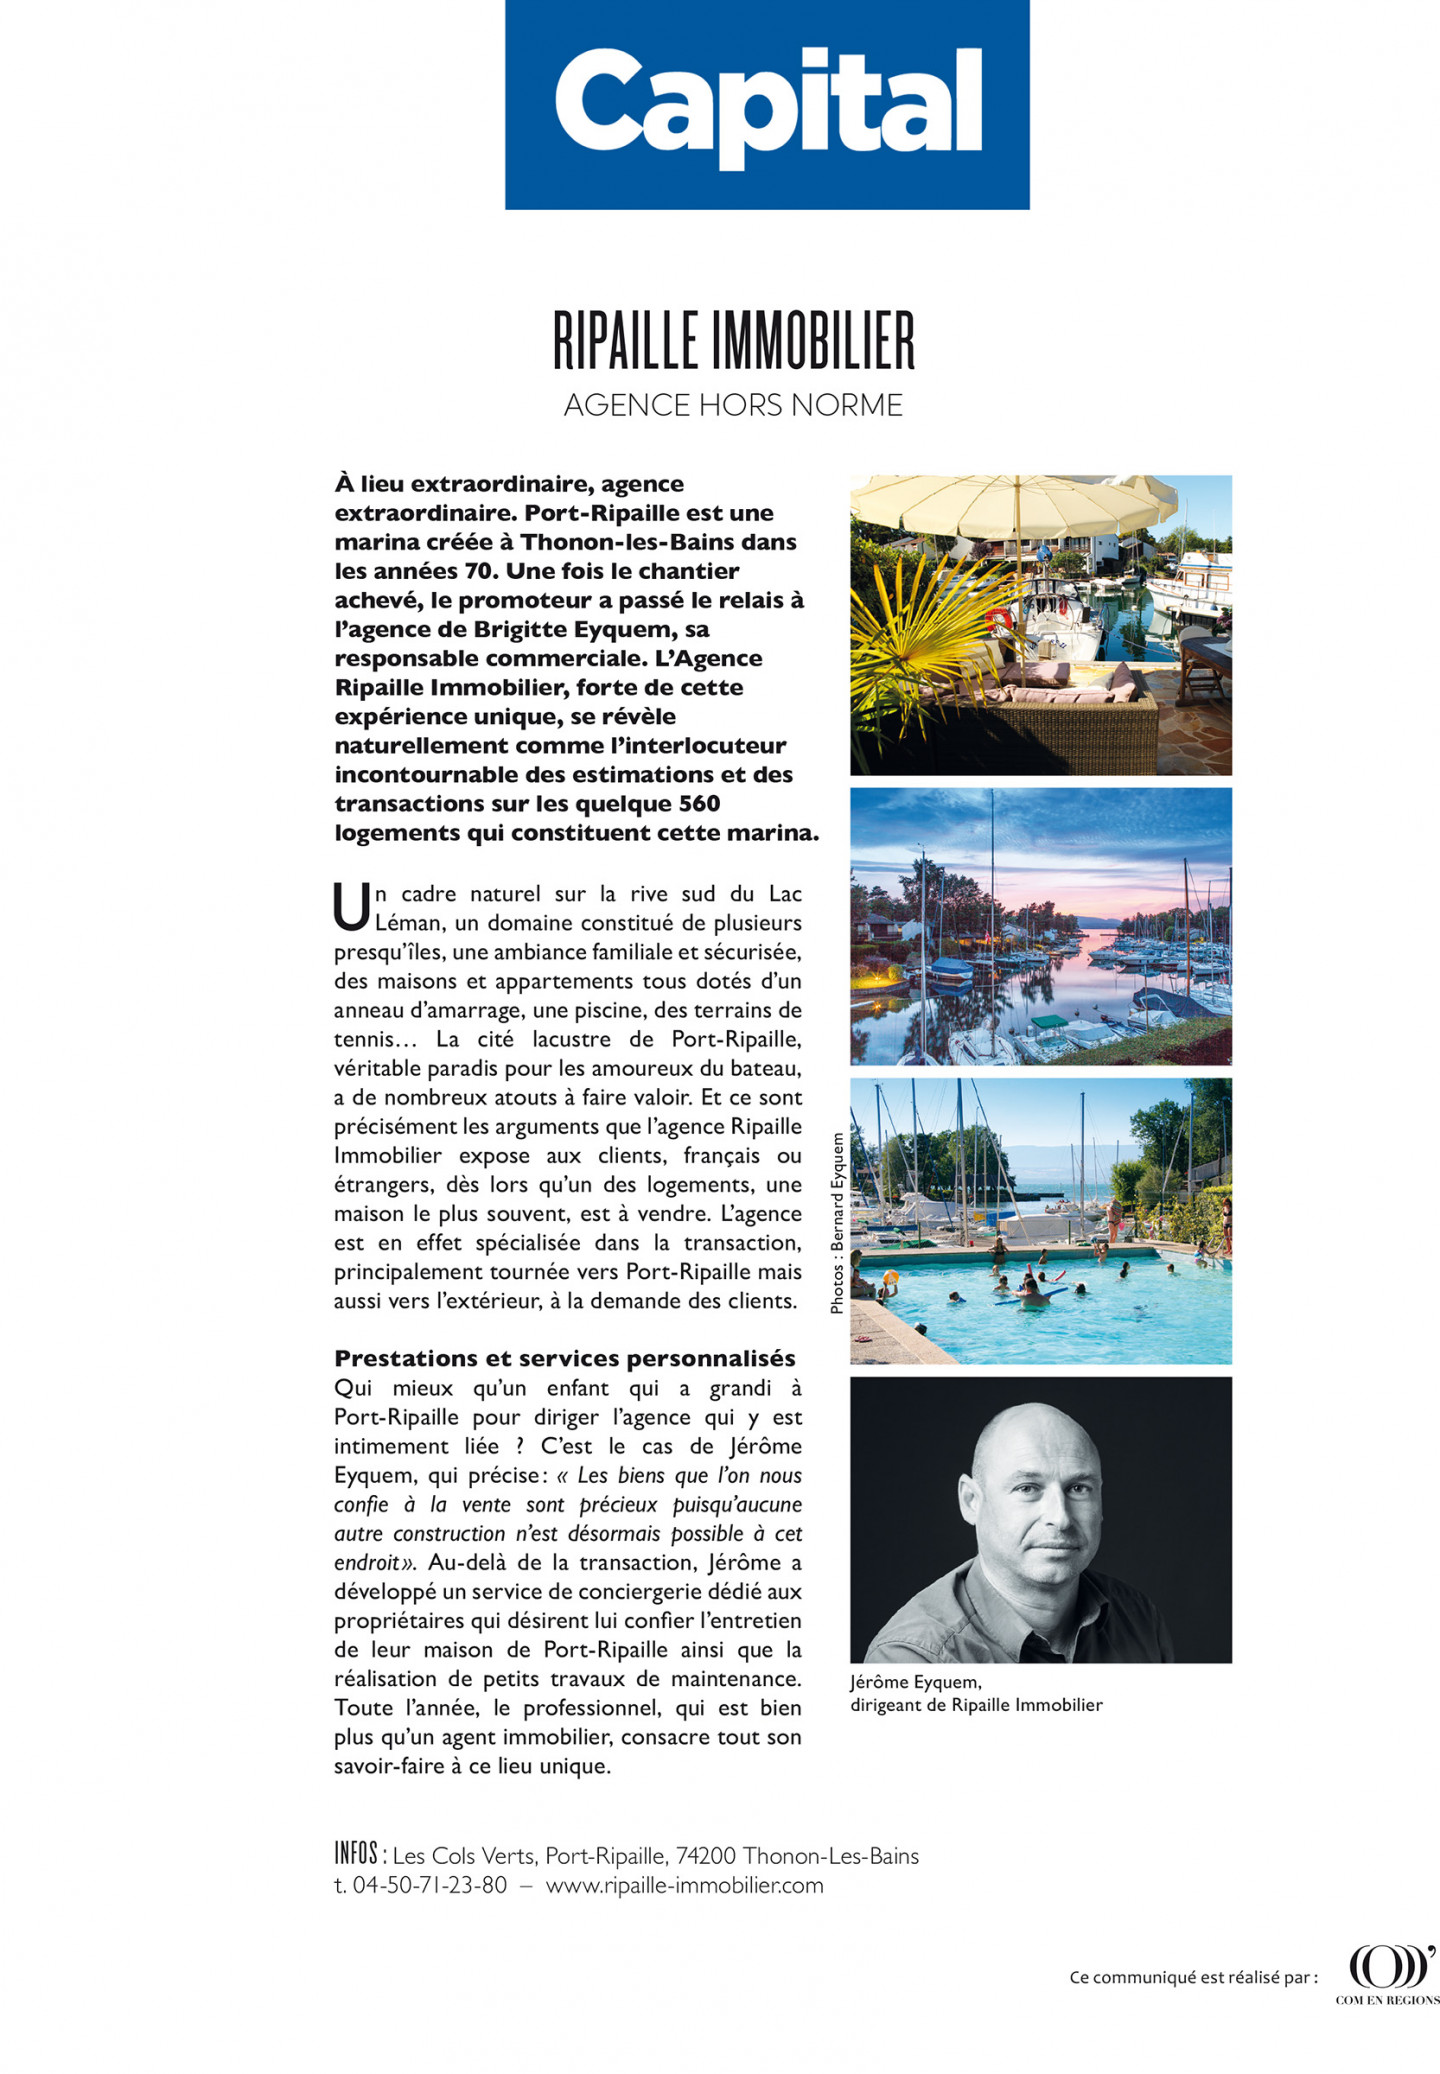 RIPAILLE_IMMOBILIER_Capital